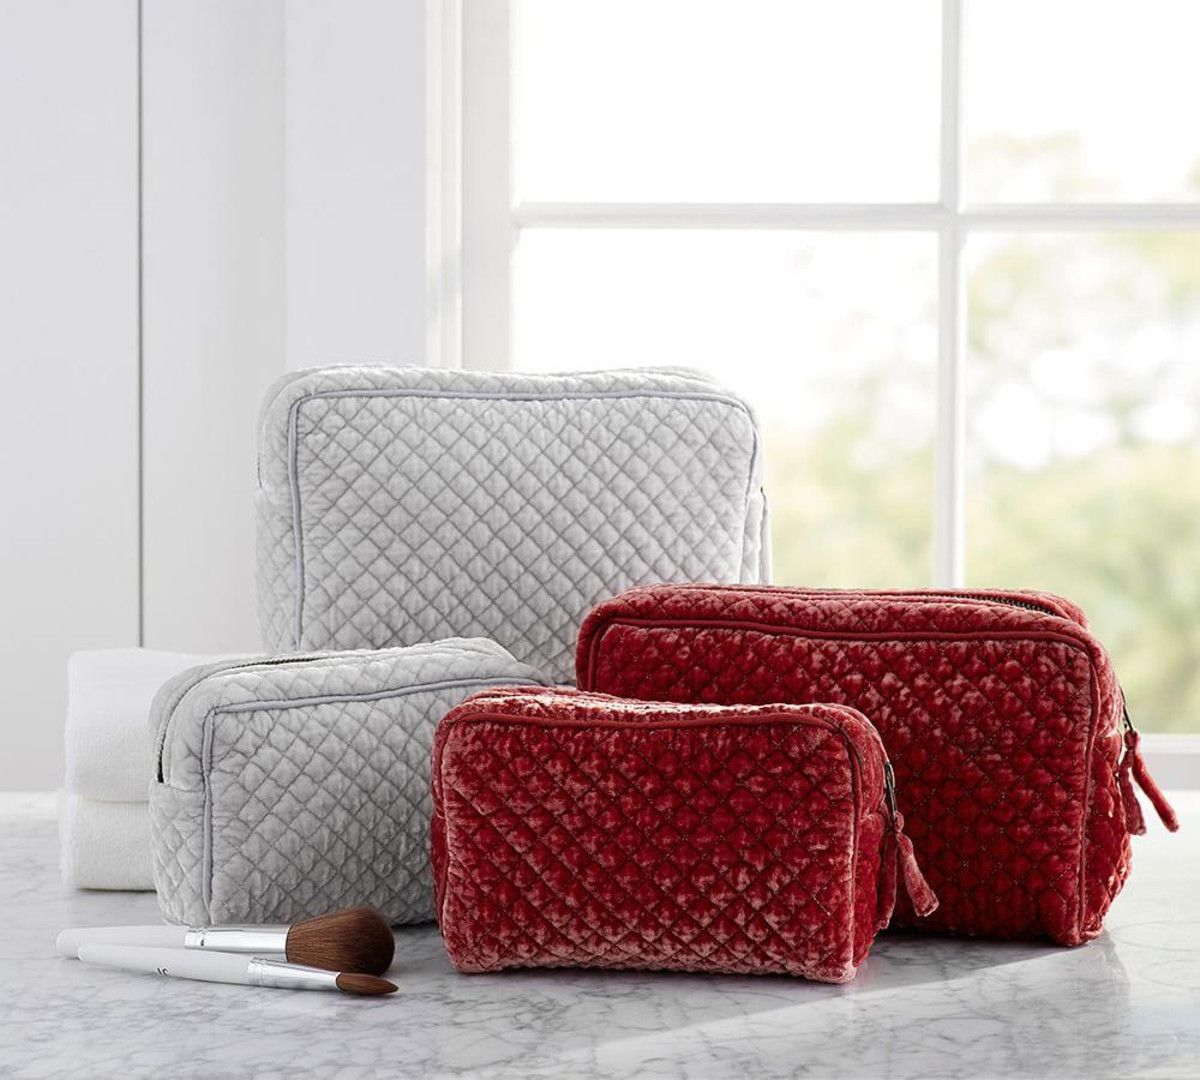 Quilted Soft Sheen Velvet Cosmetic Bags Set of 2 Soft